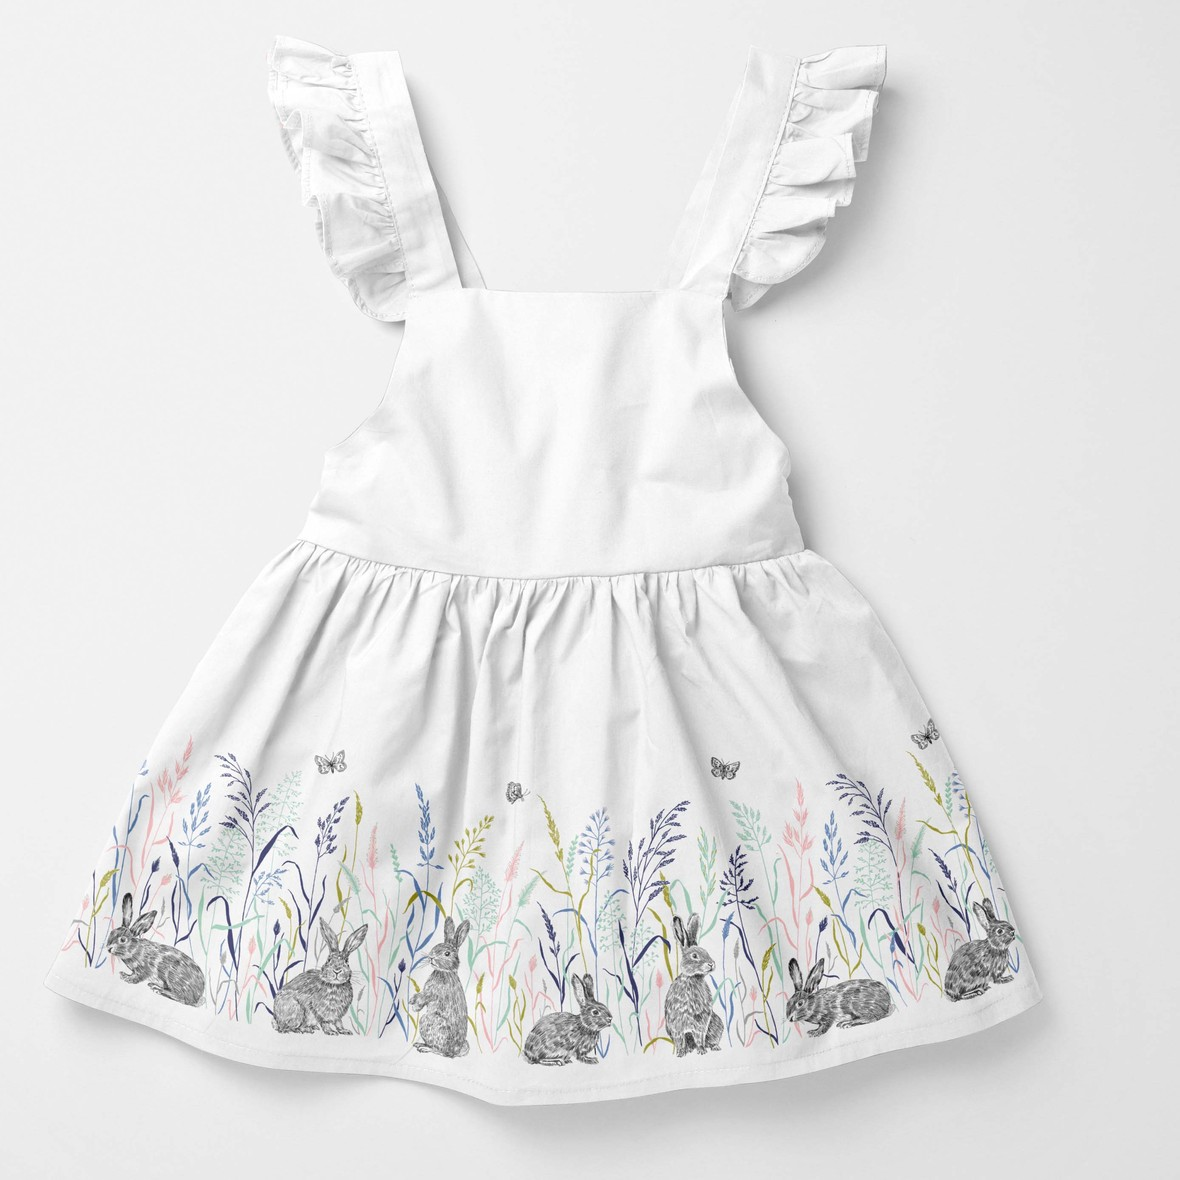 baby dress hoppy trails spring meadow